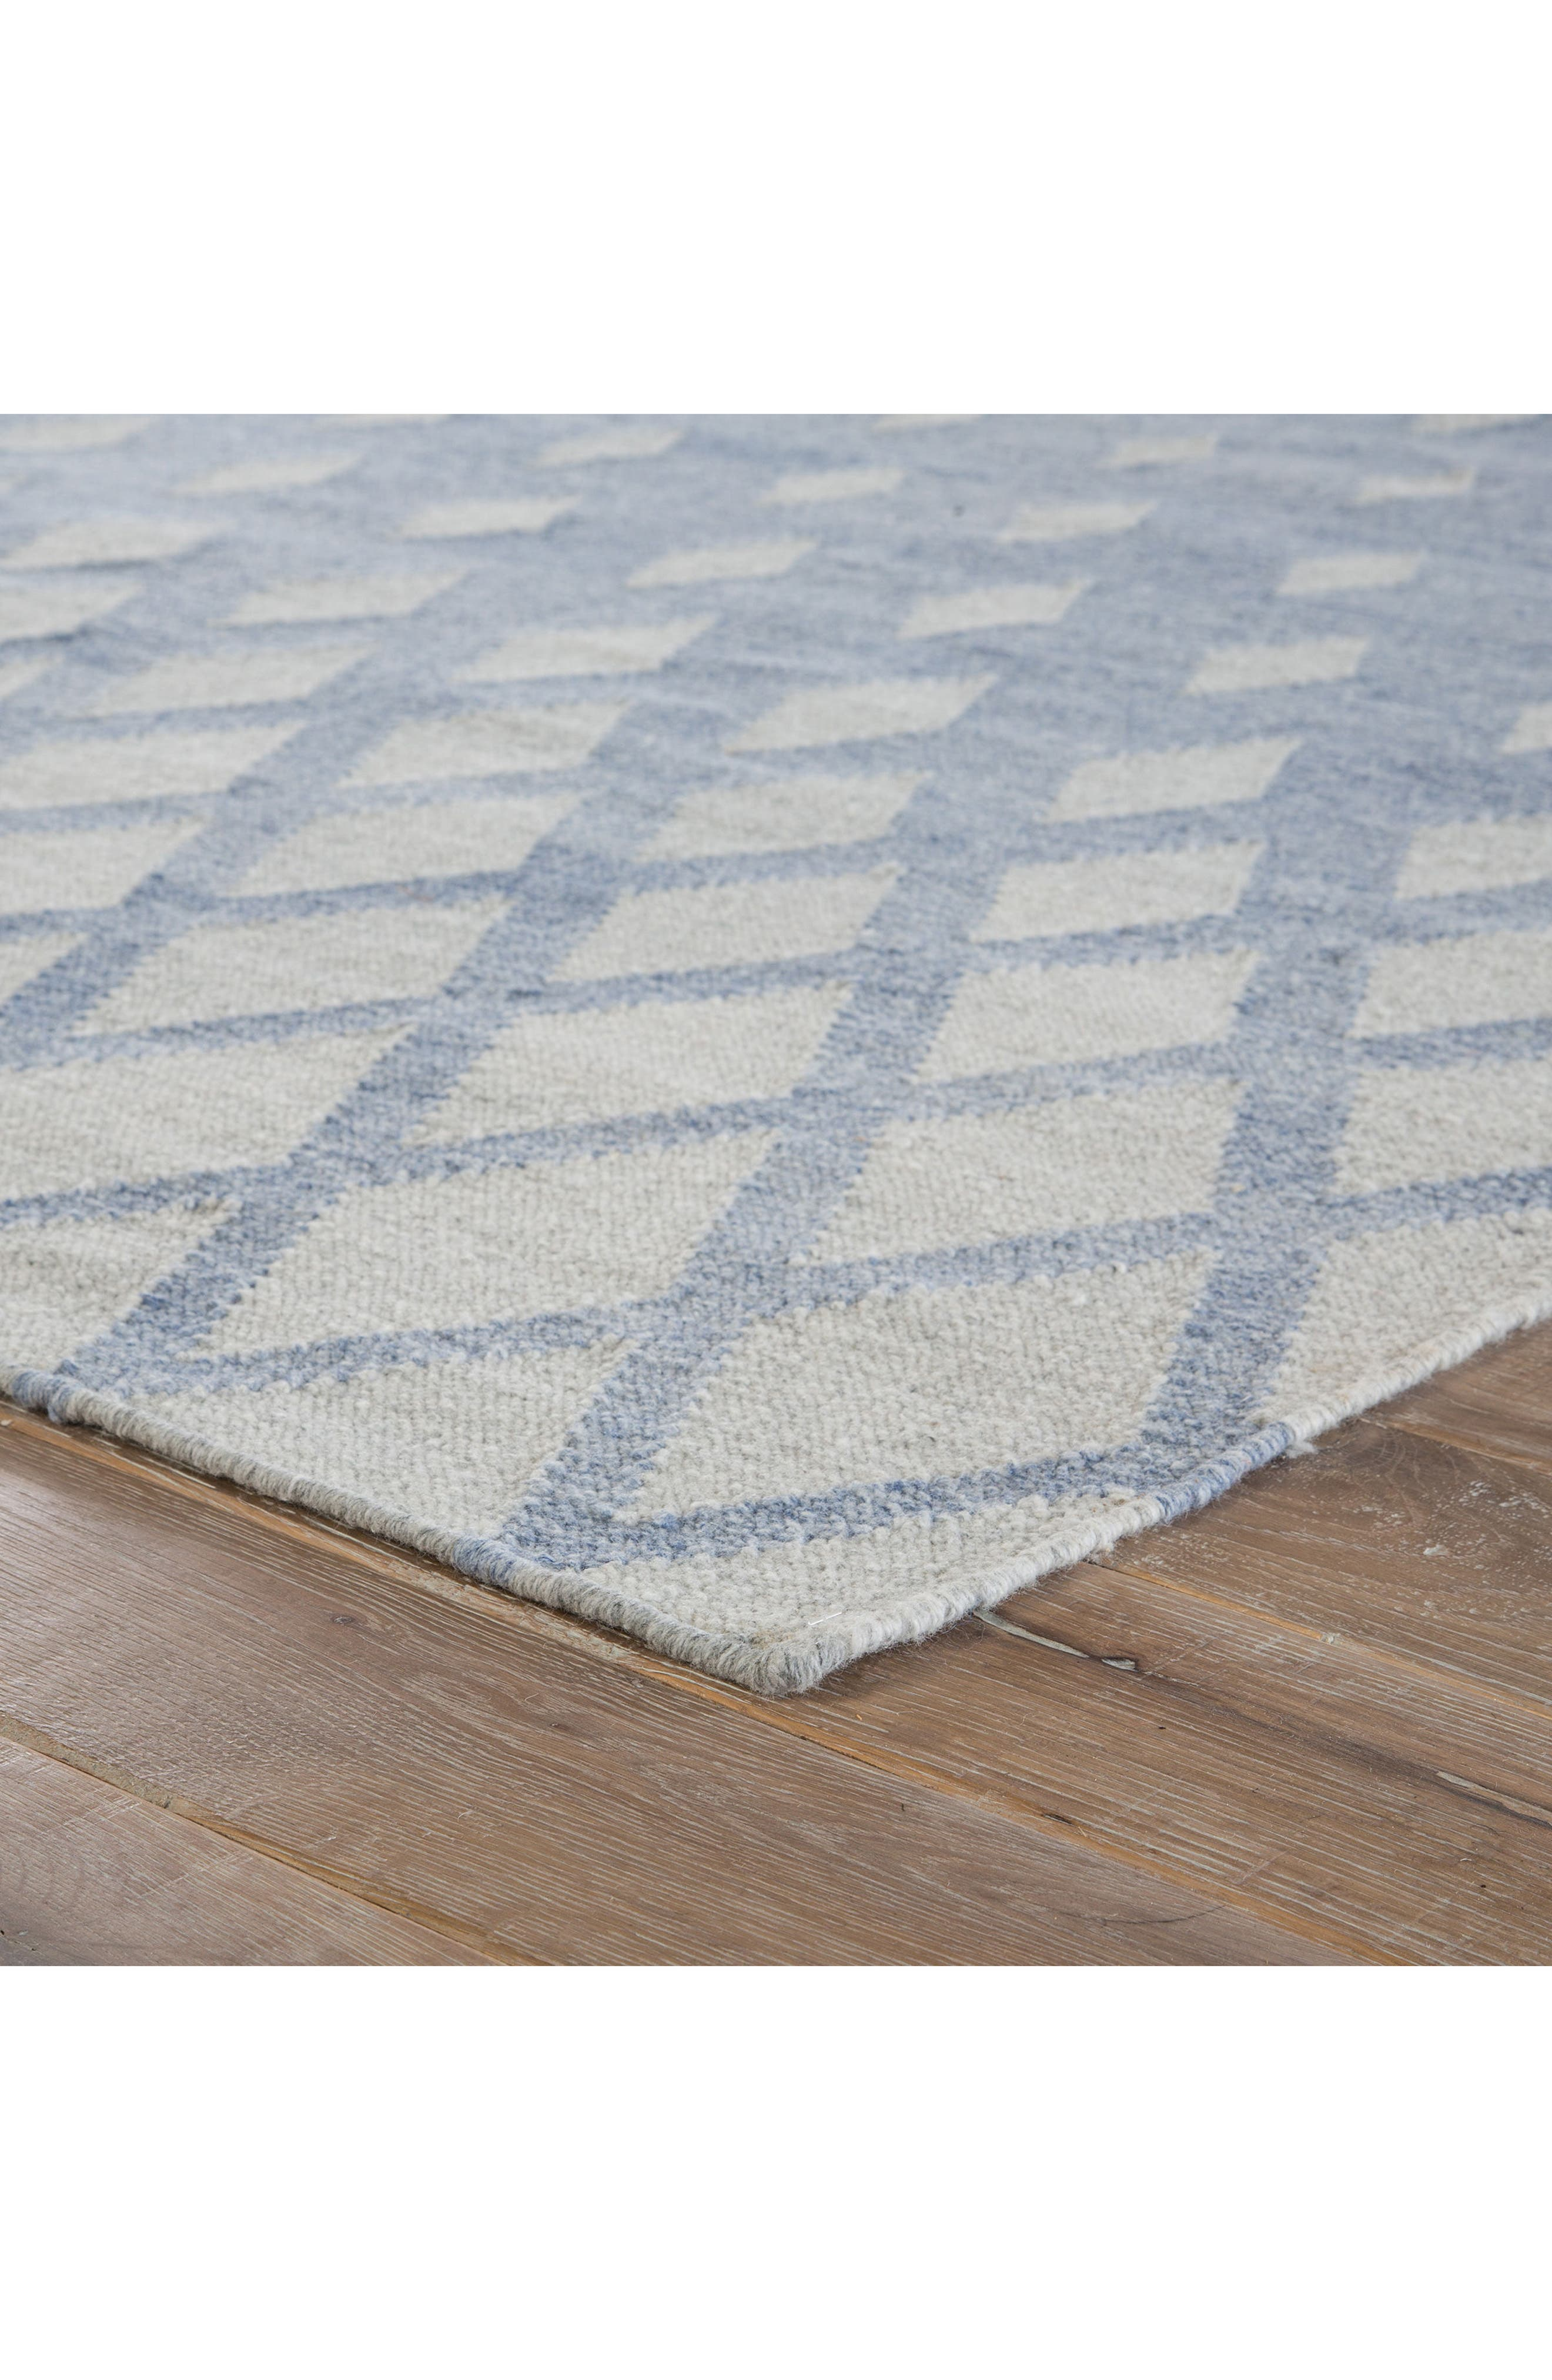 Pyramid Blocks Rug,                             Alternate thumbnail 2, color,                             Faded Denim/ Oatmeal